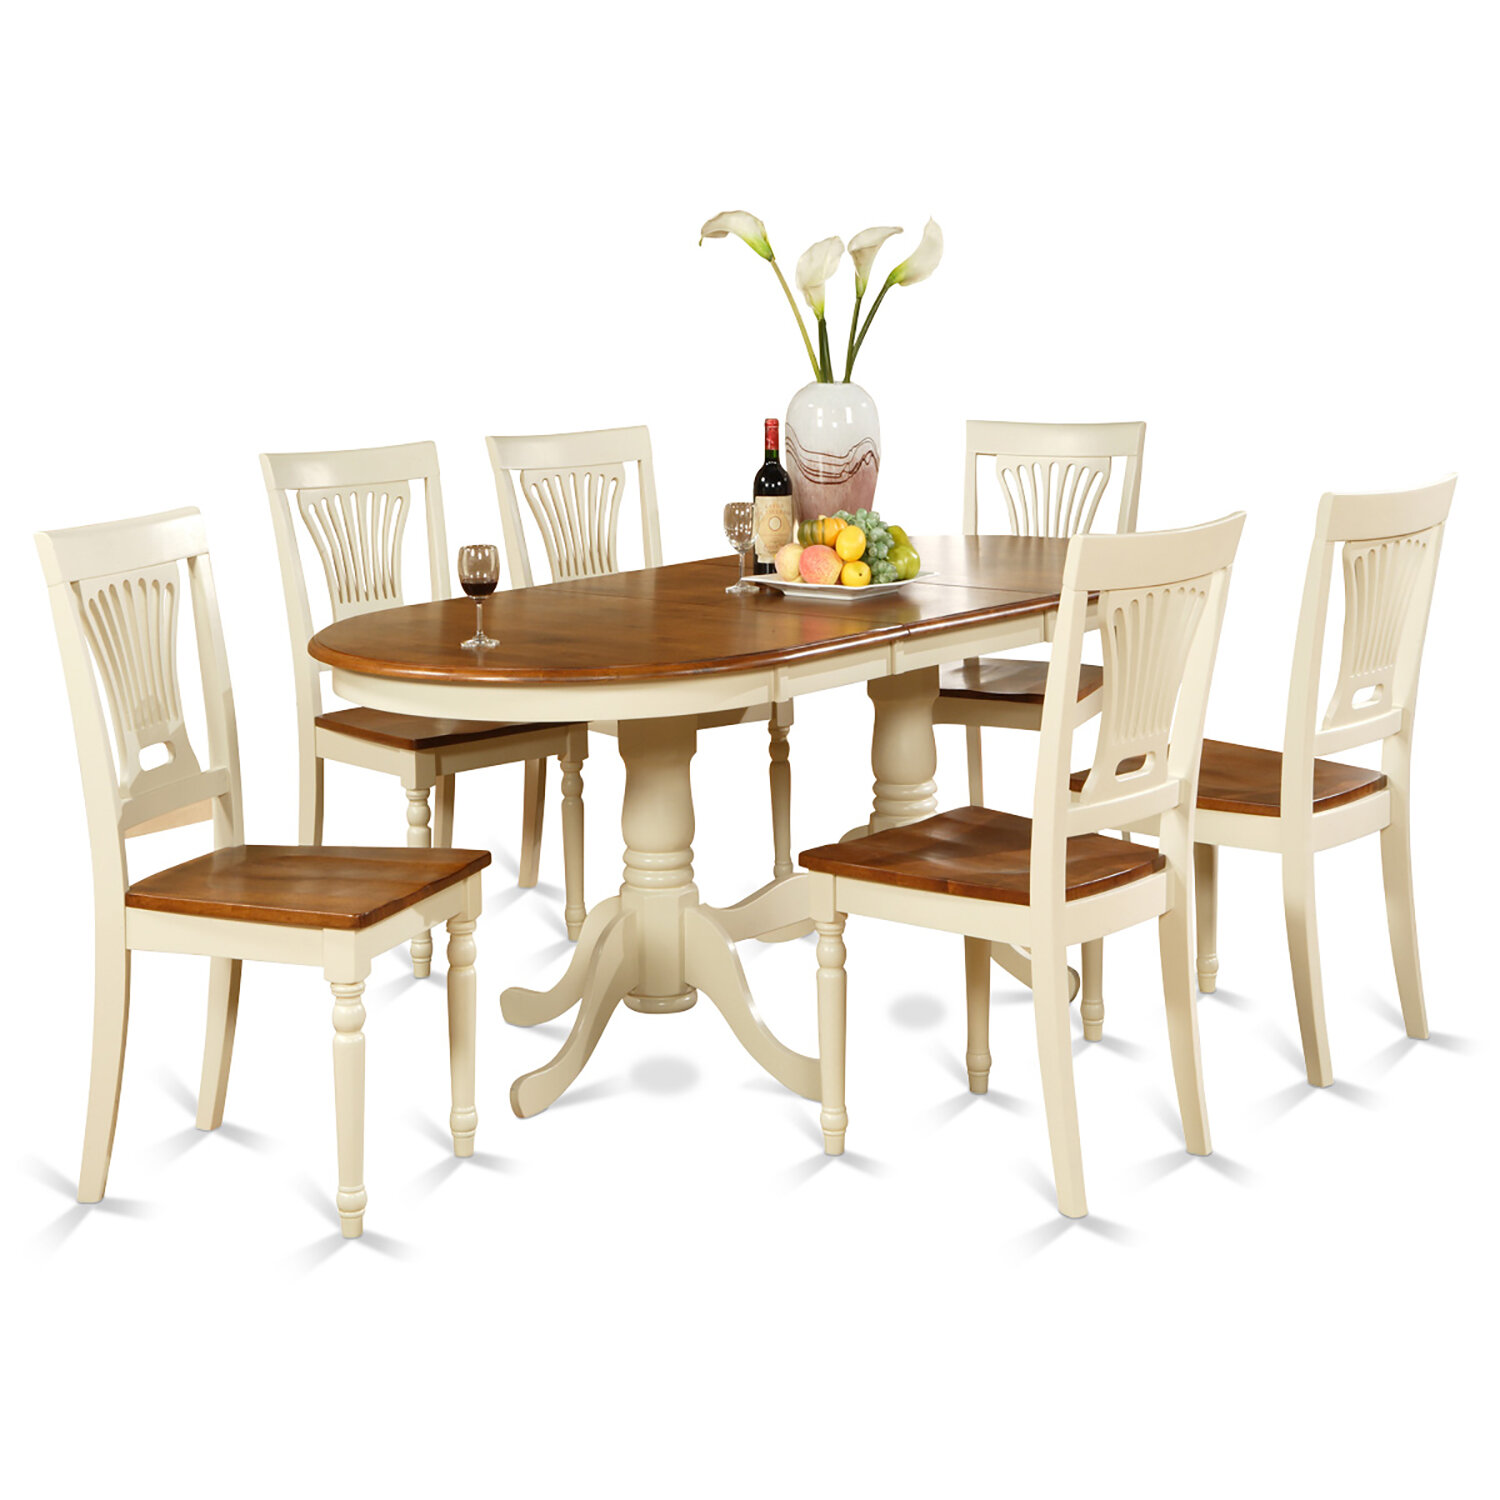 0dc518eee9f19 Darby Home Co Germantown 7 Piece Extendable Dining Set   Reviews ...